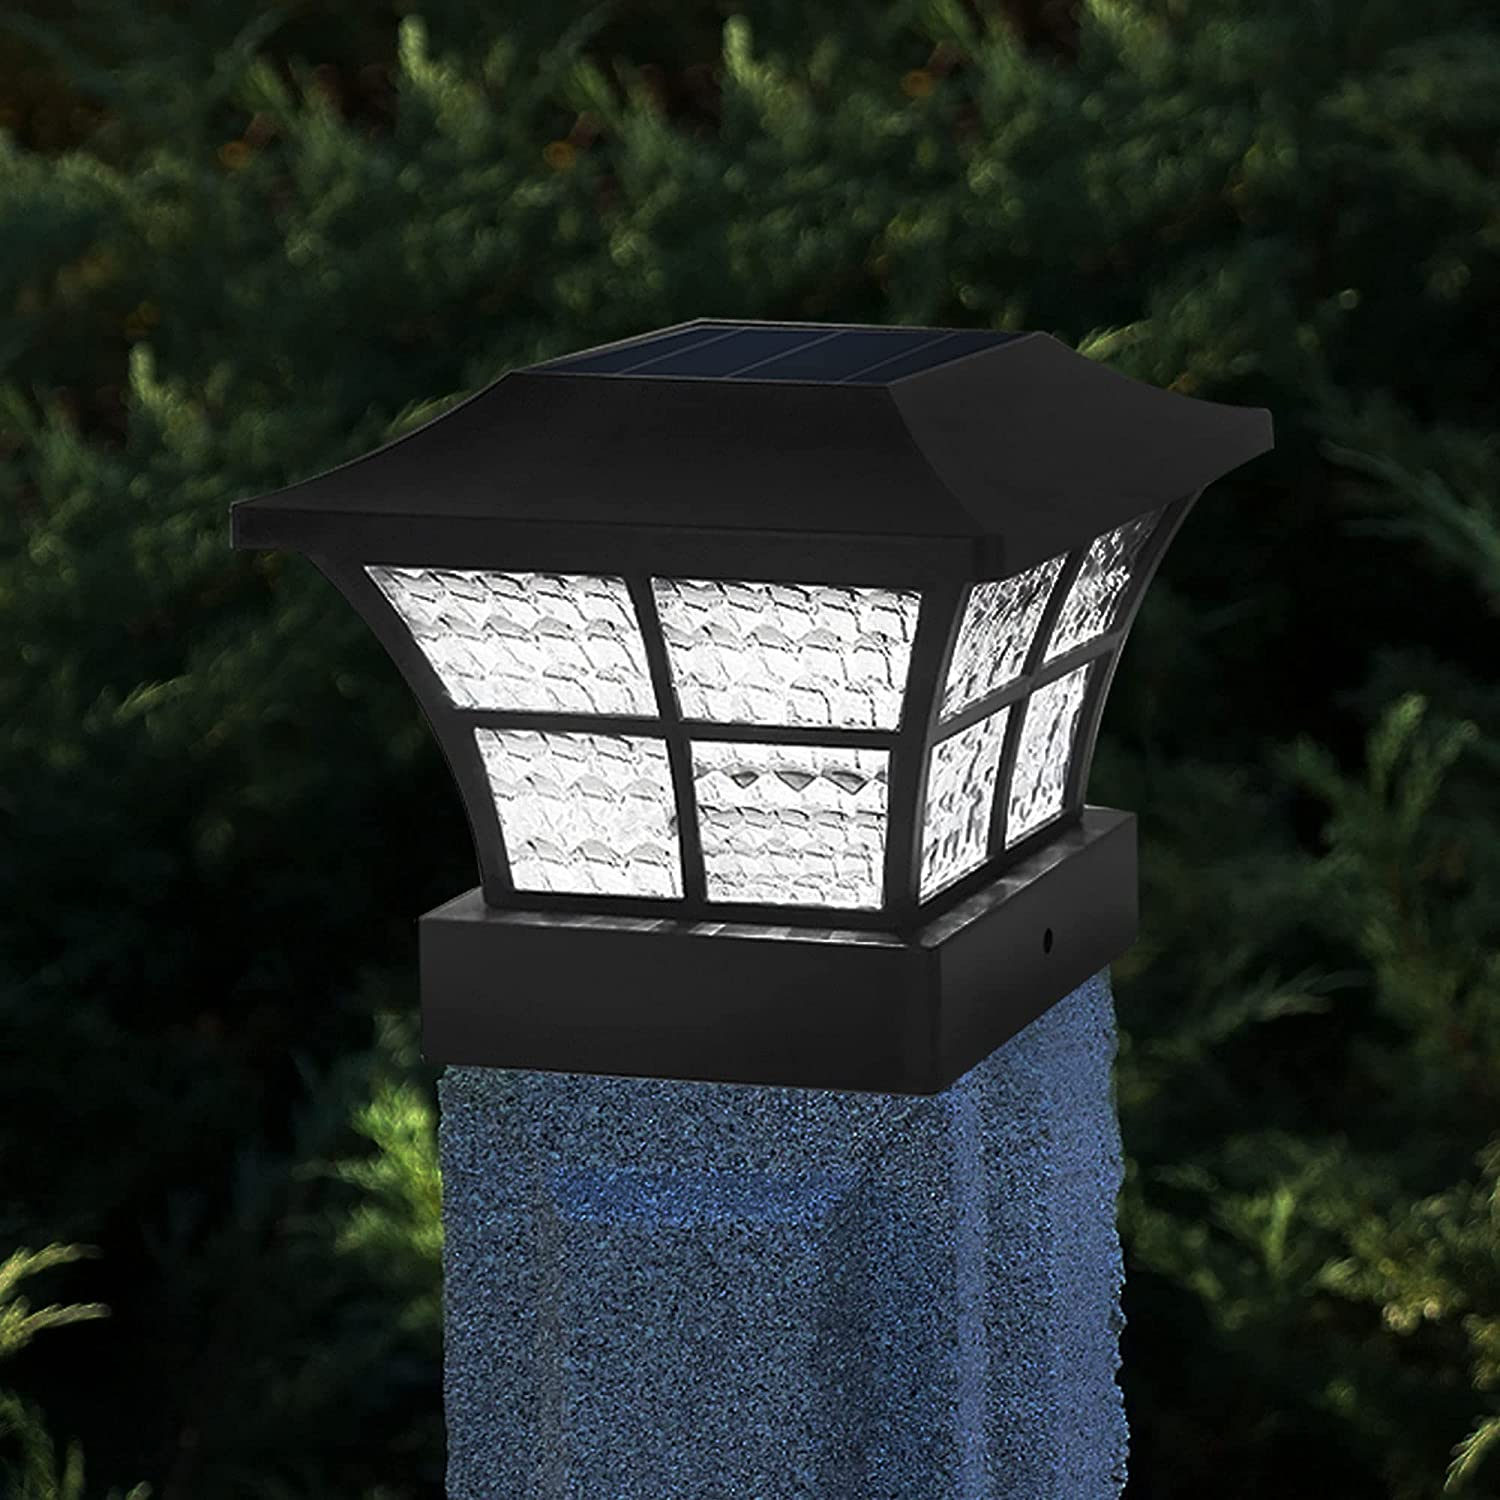 2PK Fence Post Solar Lights Outdoor 3.5x3.5 4x4 inch Classic Square Deck Cap LED Lamp Wooden Posts Waterproof for Landscape, Pathway, Patio, Front Door Decoration (Black- Cool White)